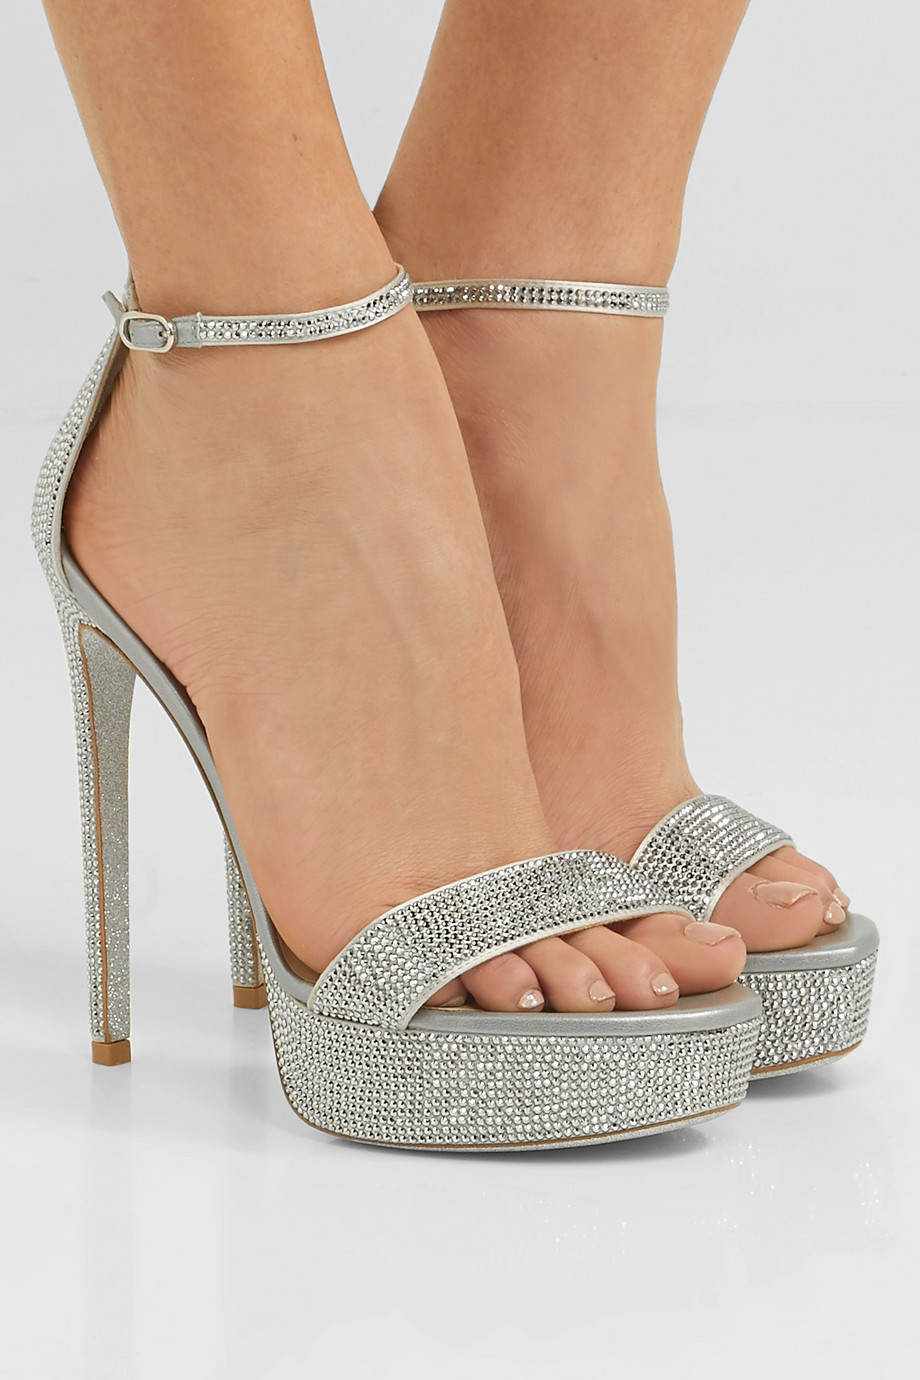 RENÉ CAOVILLA Celebrita crystal-embellished satin platform sandals